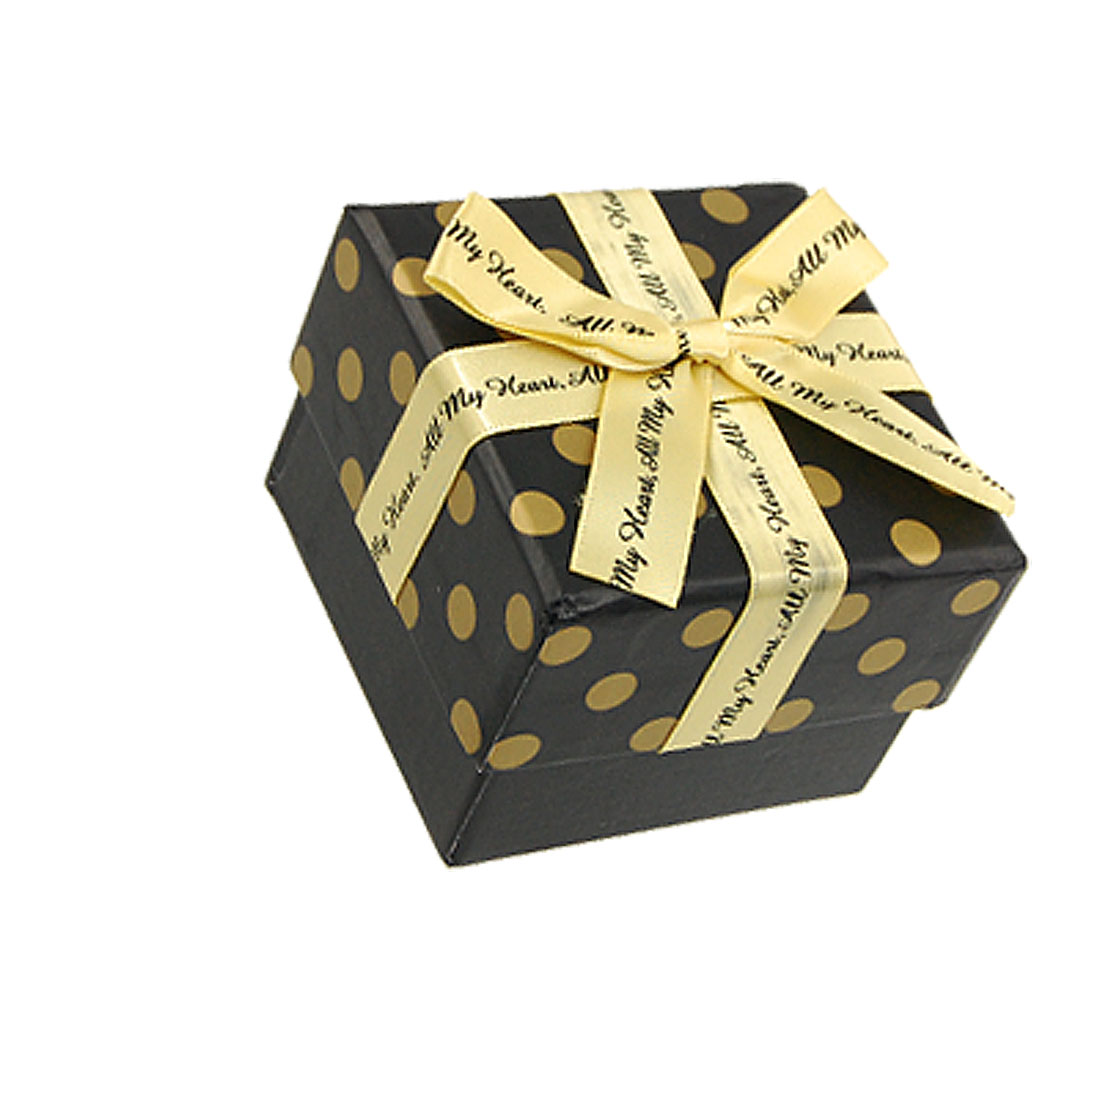 Ribbon Bowknot Detail Dotted Paper Square Gift Case Box Black Yellow